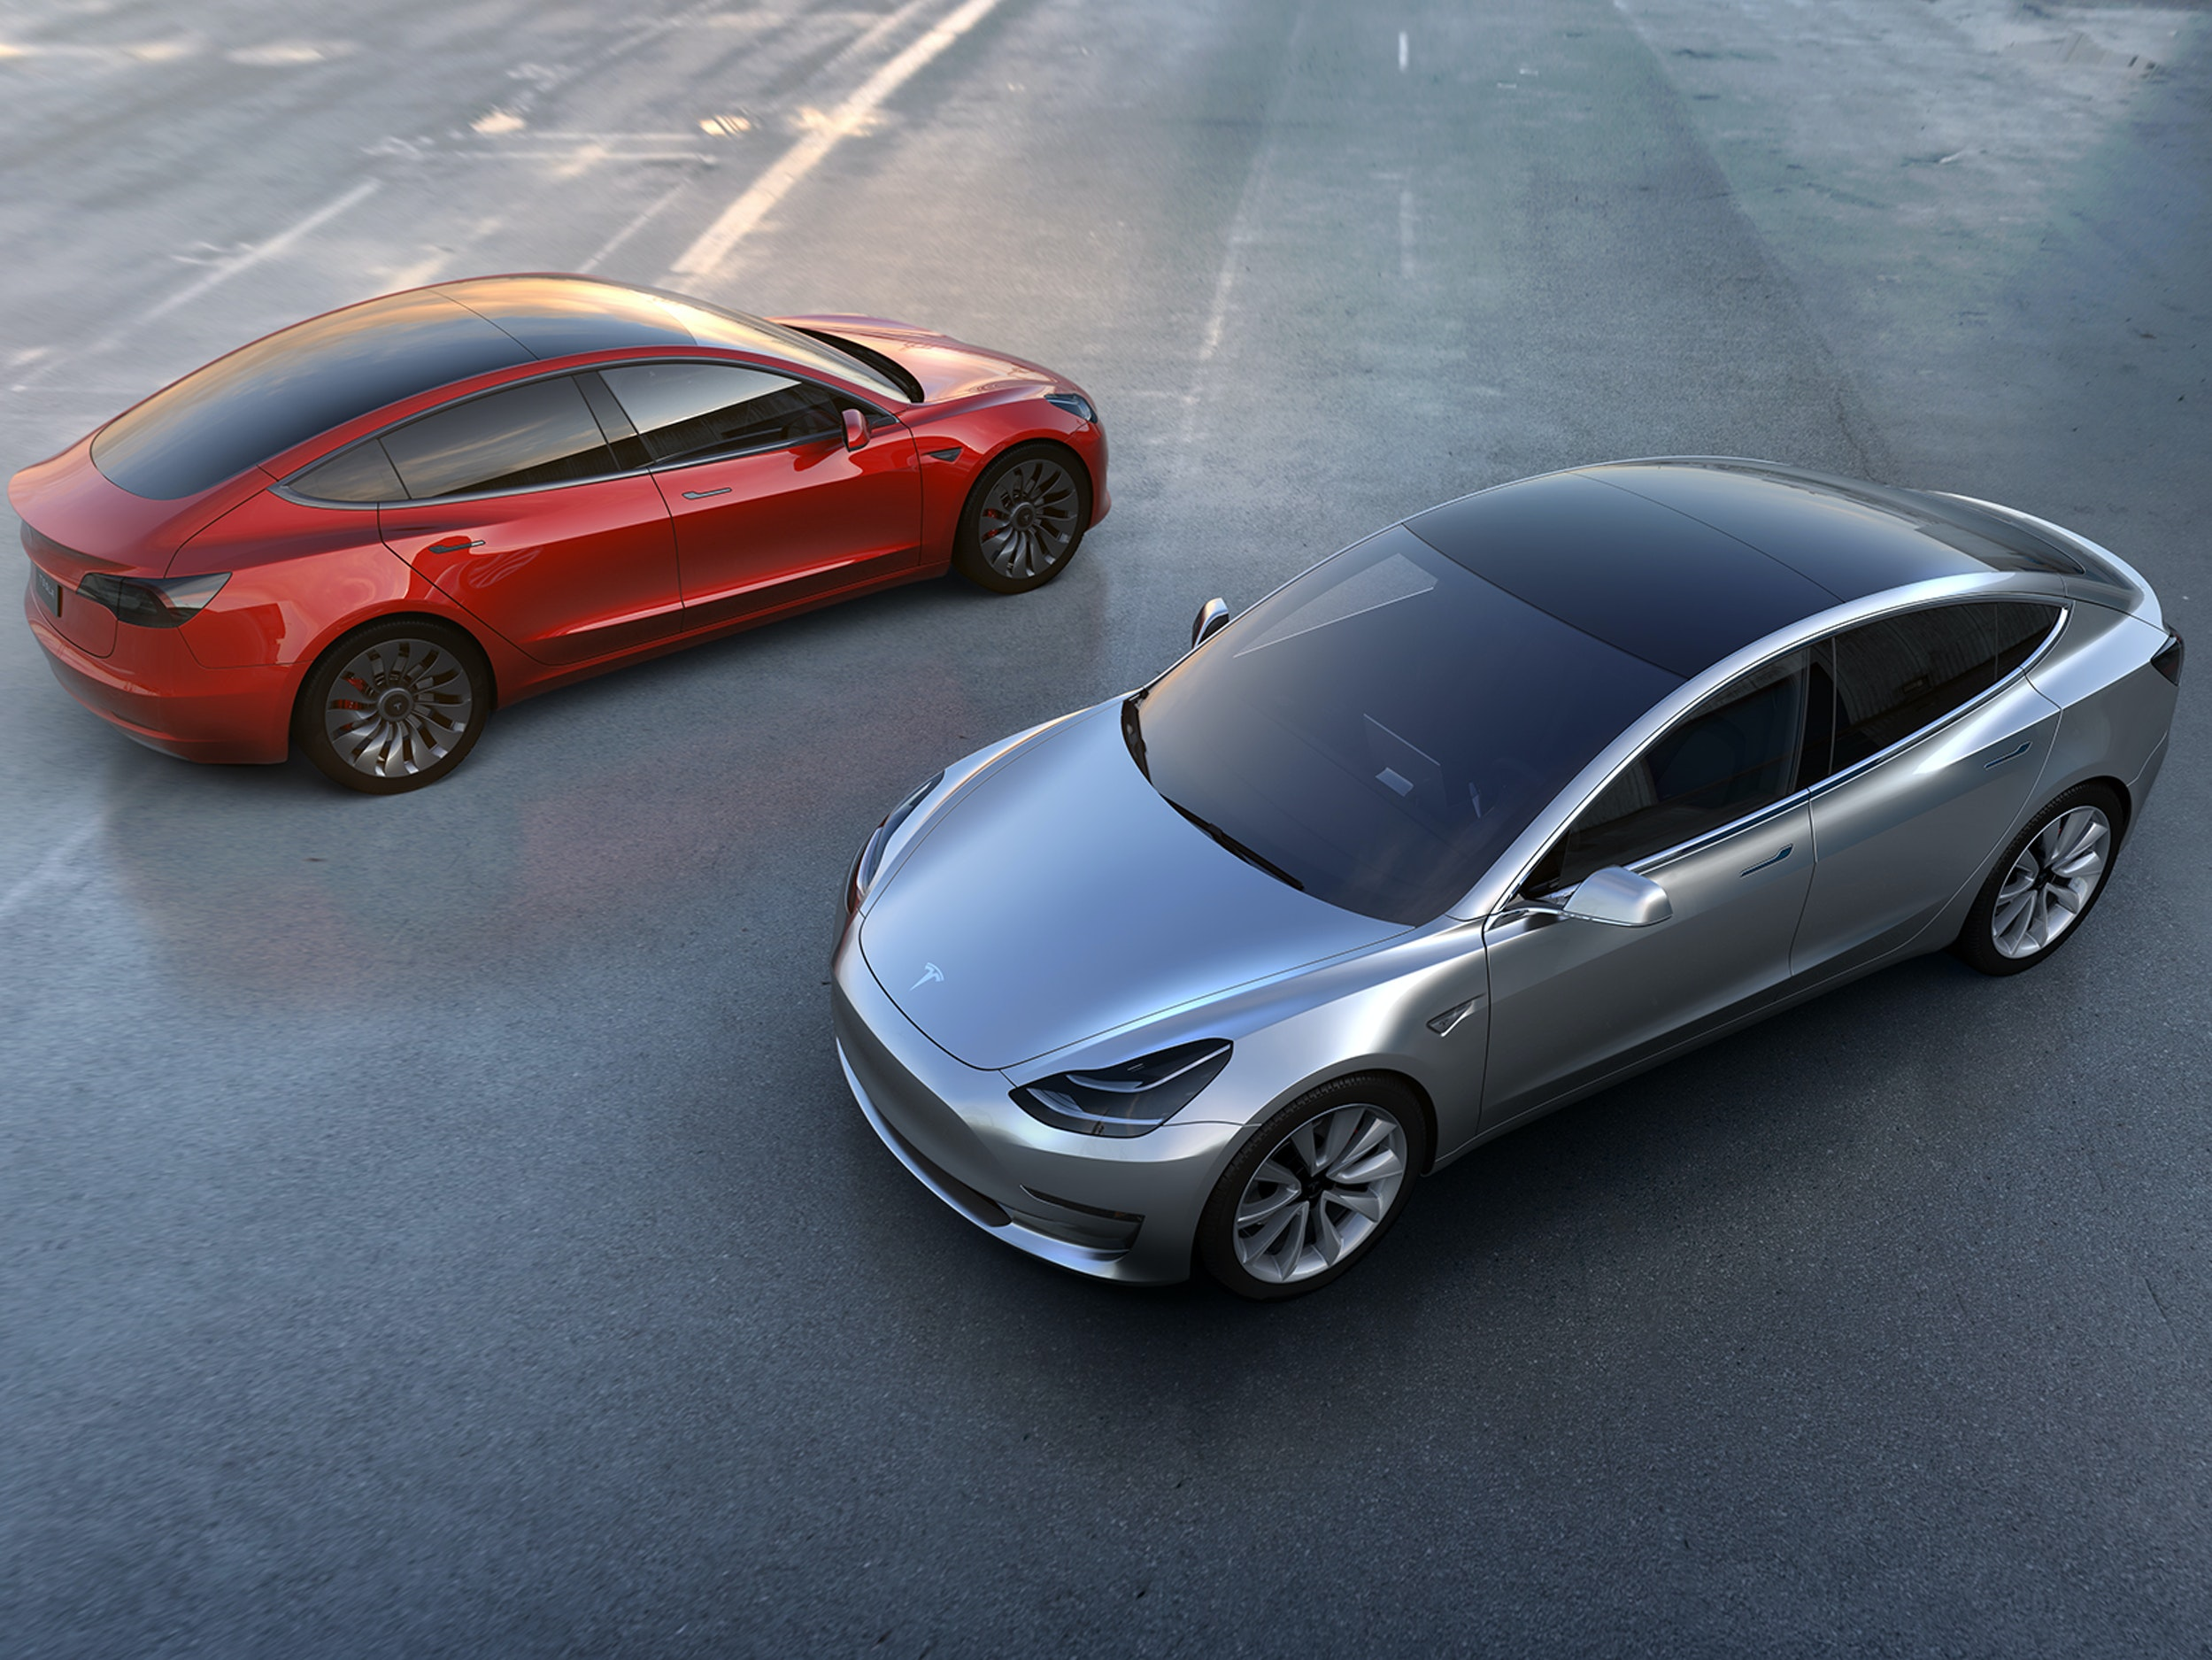 Tesla Model 3 Rumors and News Keep Coming Ahead of Production